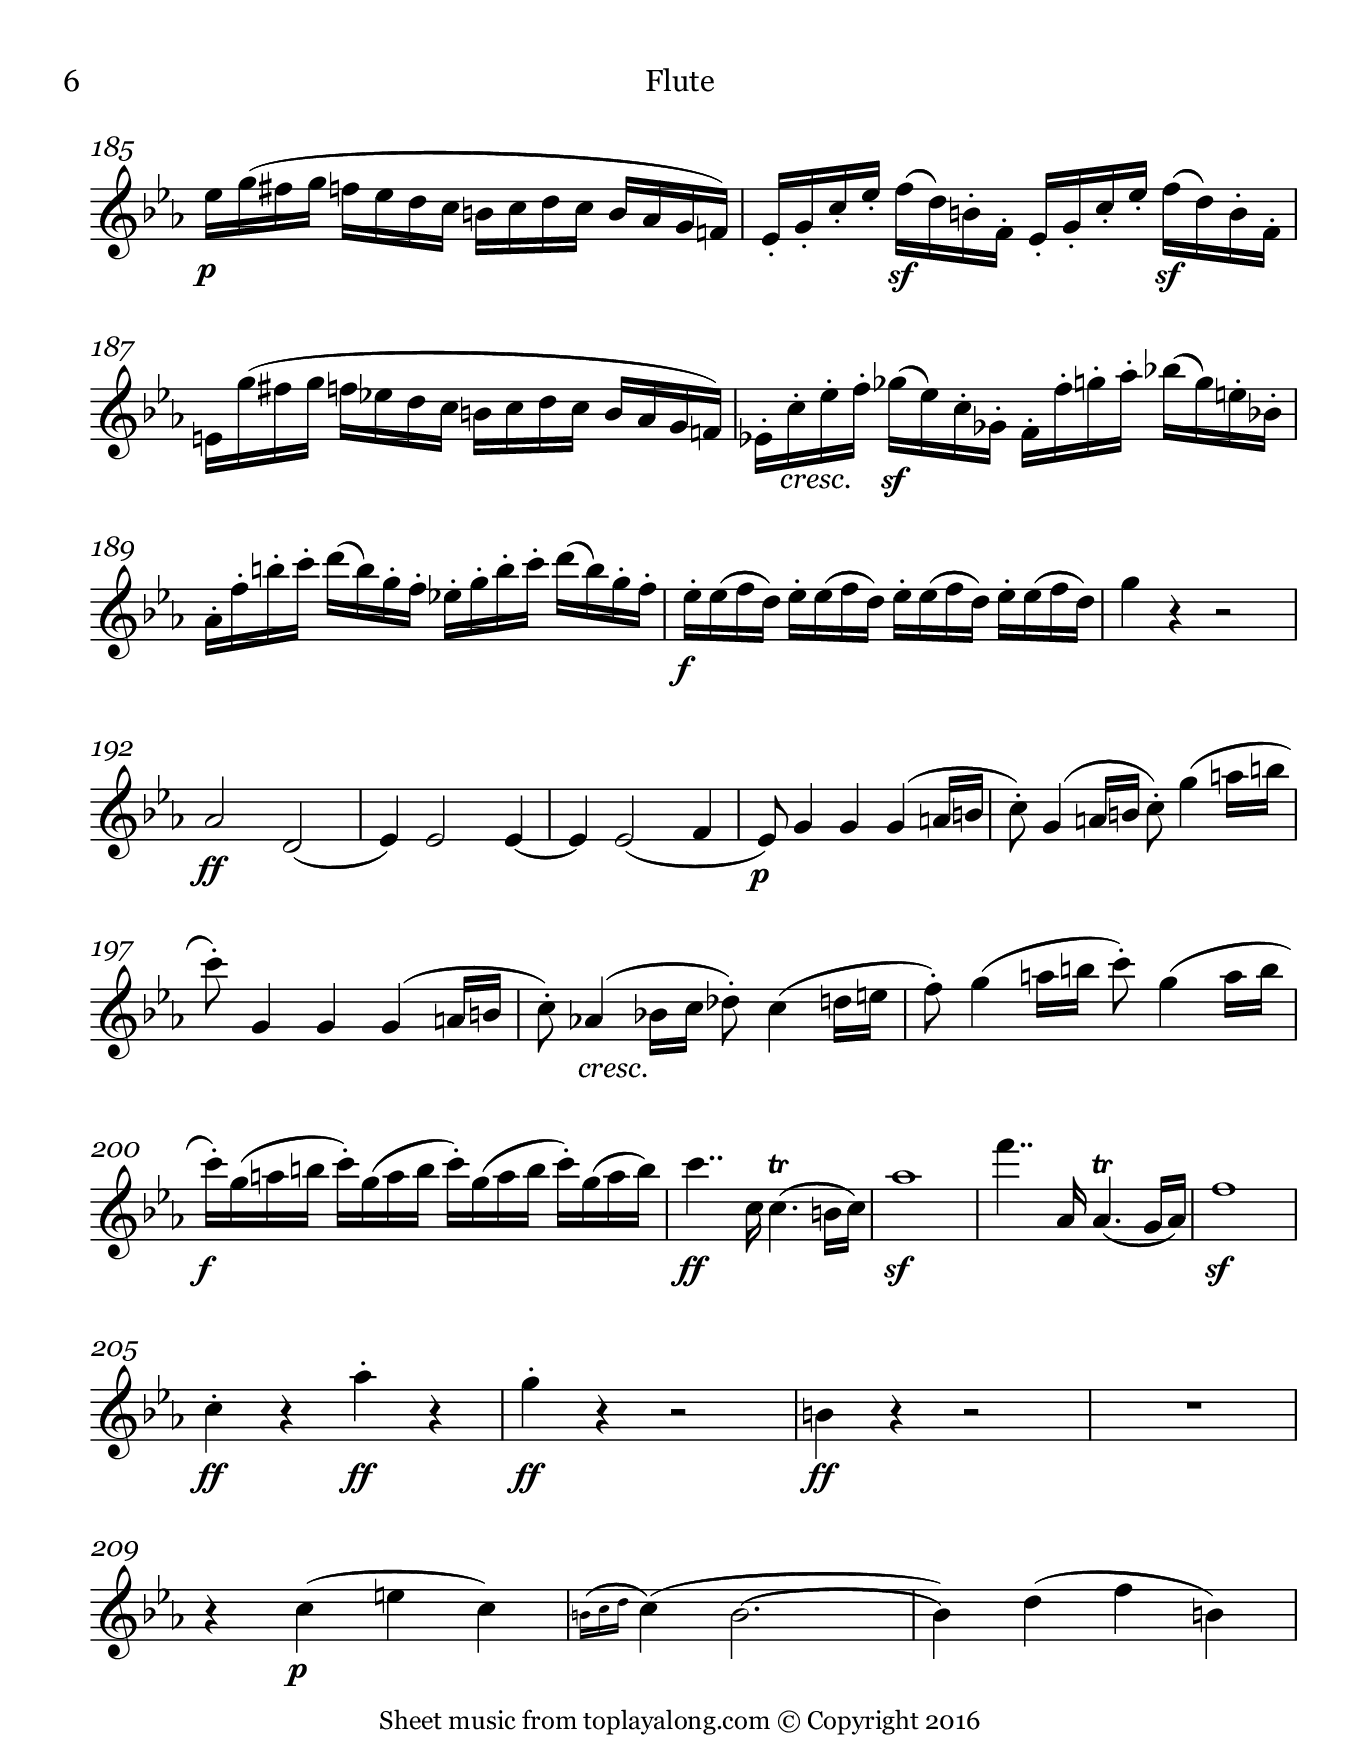 Violin Sonata No. 7 (I. Allegro) by Beethoven. Sheet music for Flute, page 6.